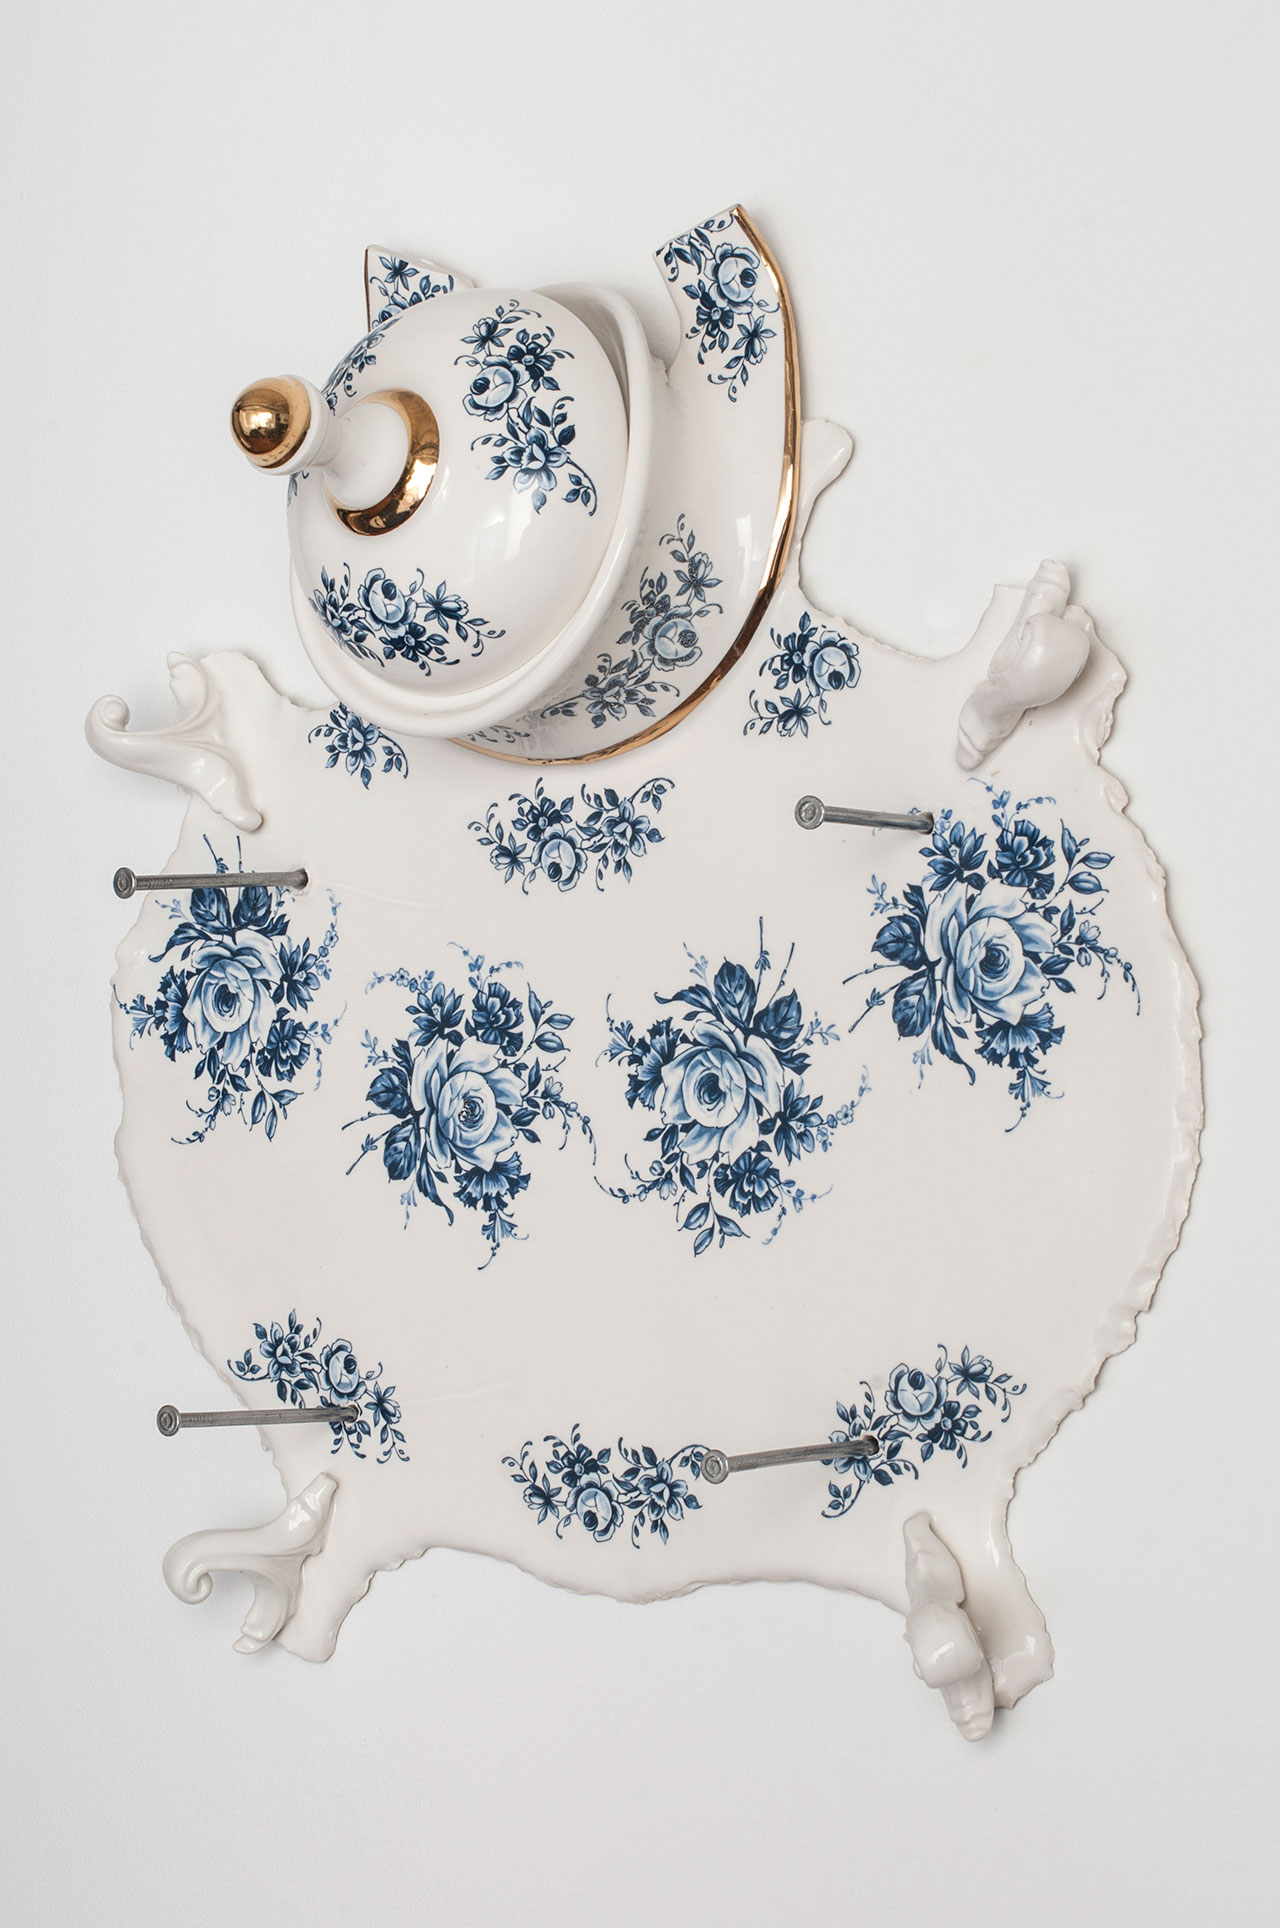 Craste Laurent, Dépouille aux fleurs «Bleu de Delft», 2012. Porcelain, glaze, decals, gold, nails. Edition 1 of 5: 40 x 38 x 14 cm. Permanent collection of the Montreal Museum of Fine Arts.